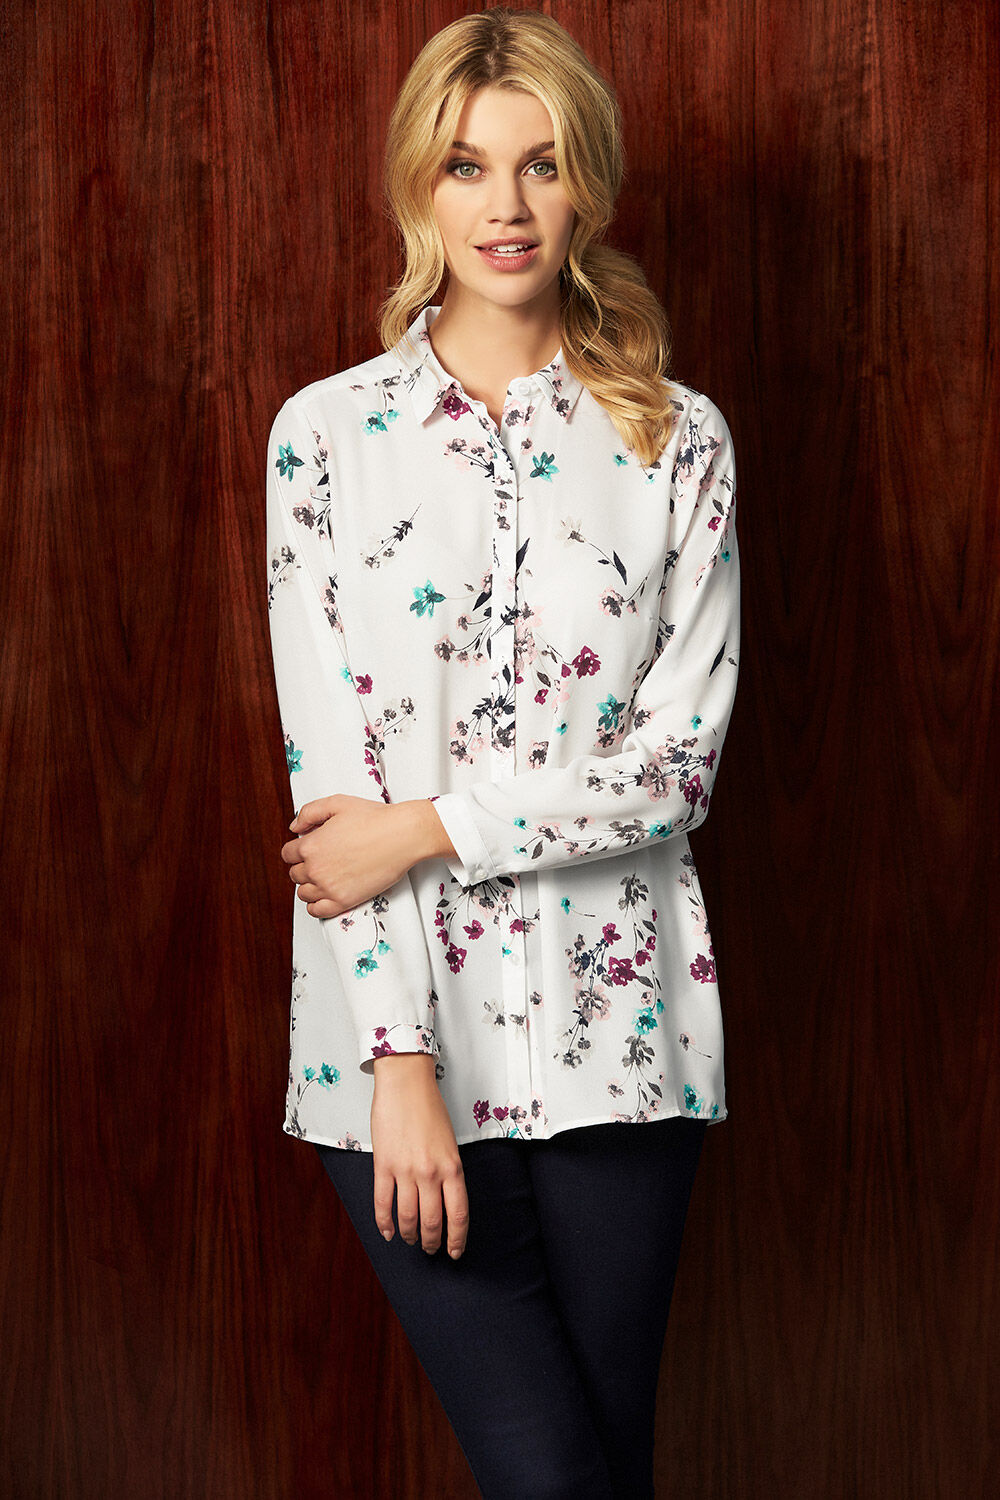 279e805d8b5 Floral Bouquet Printed Long Sleeve Shirt. Hover to zoom